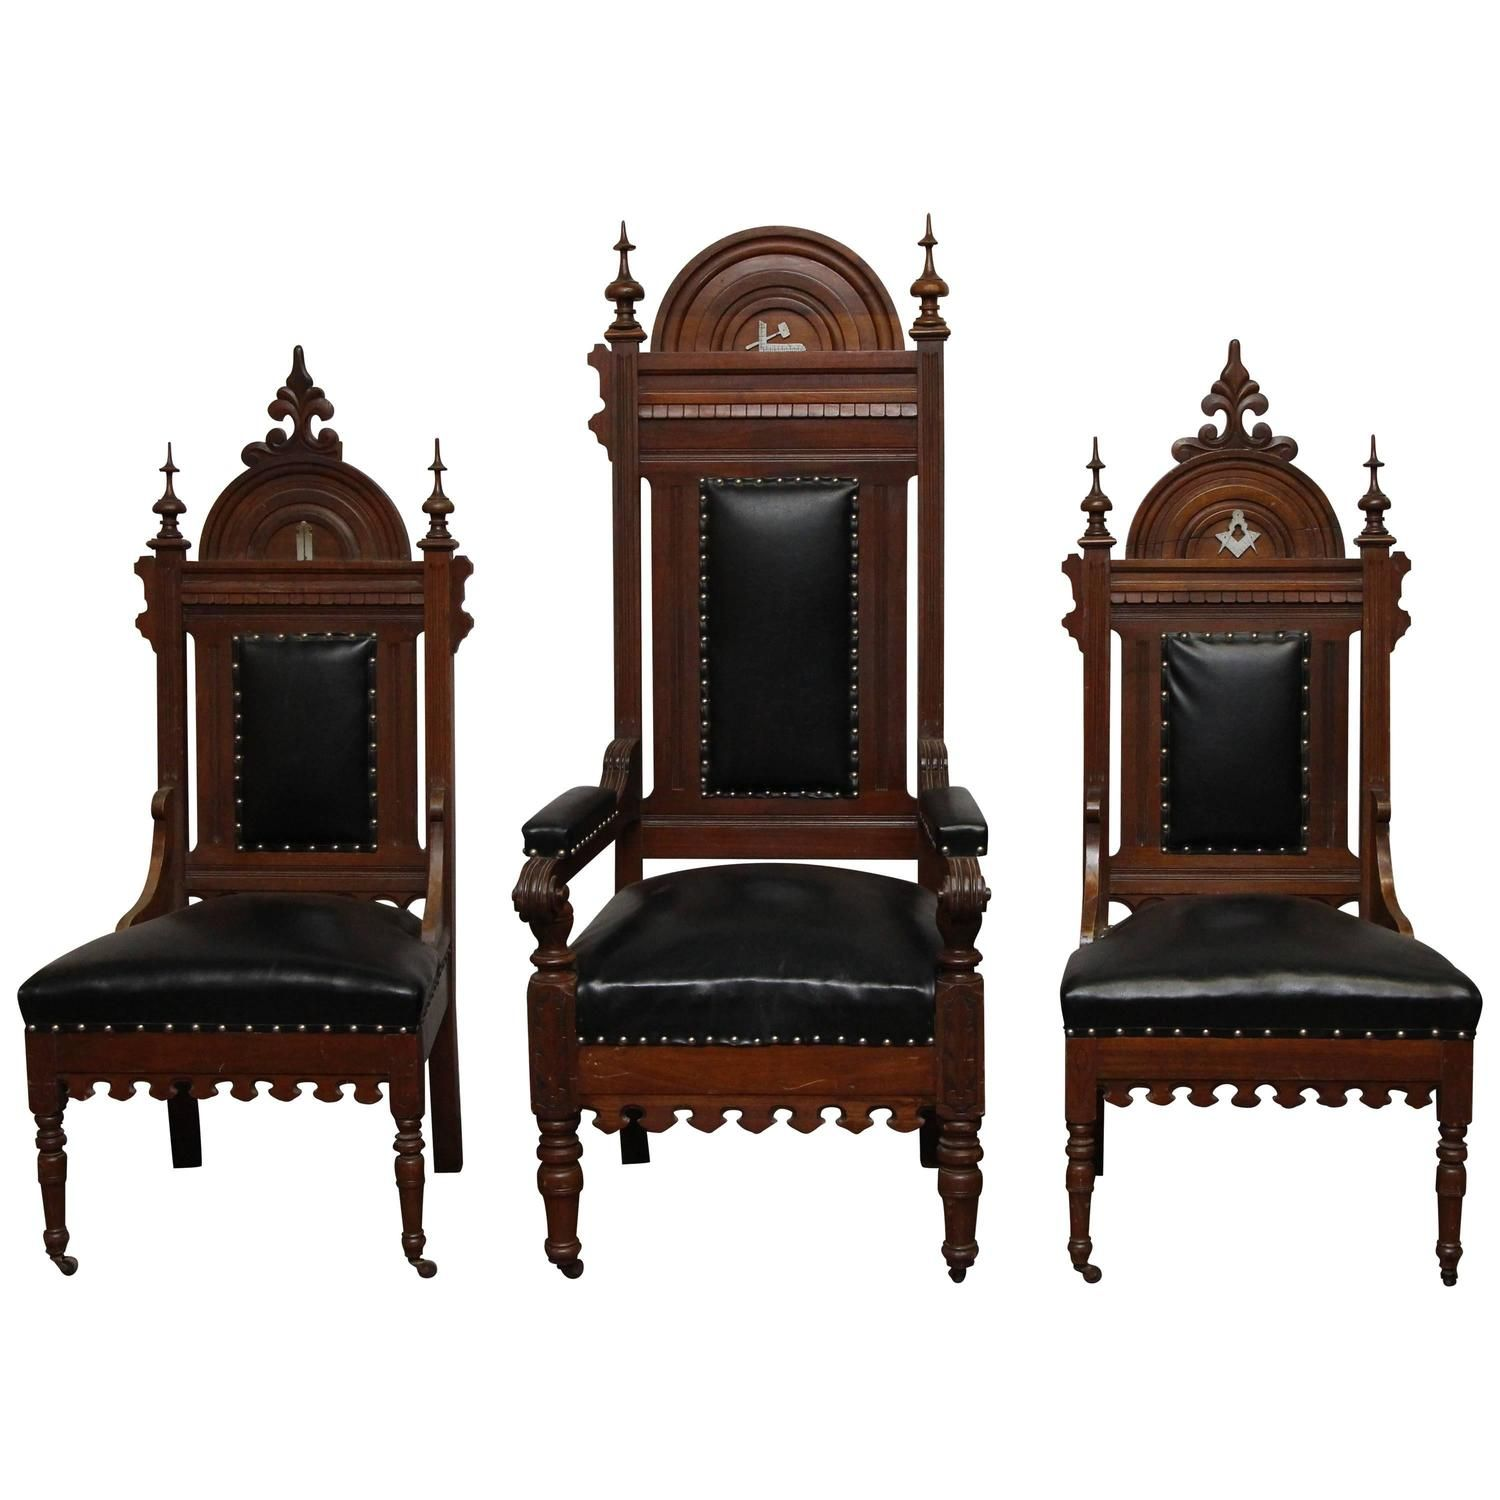 Image result for freemason chair